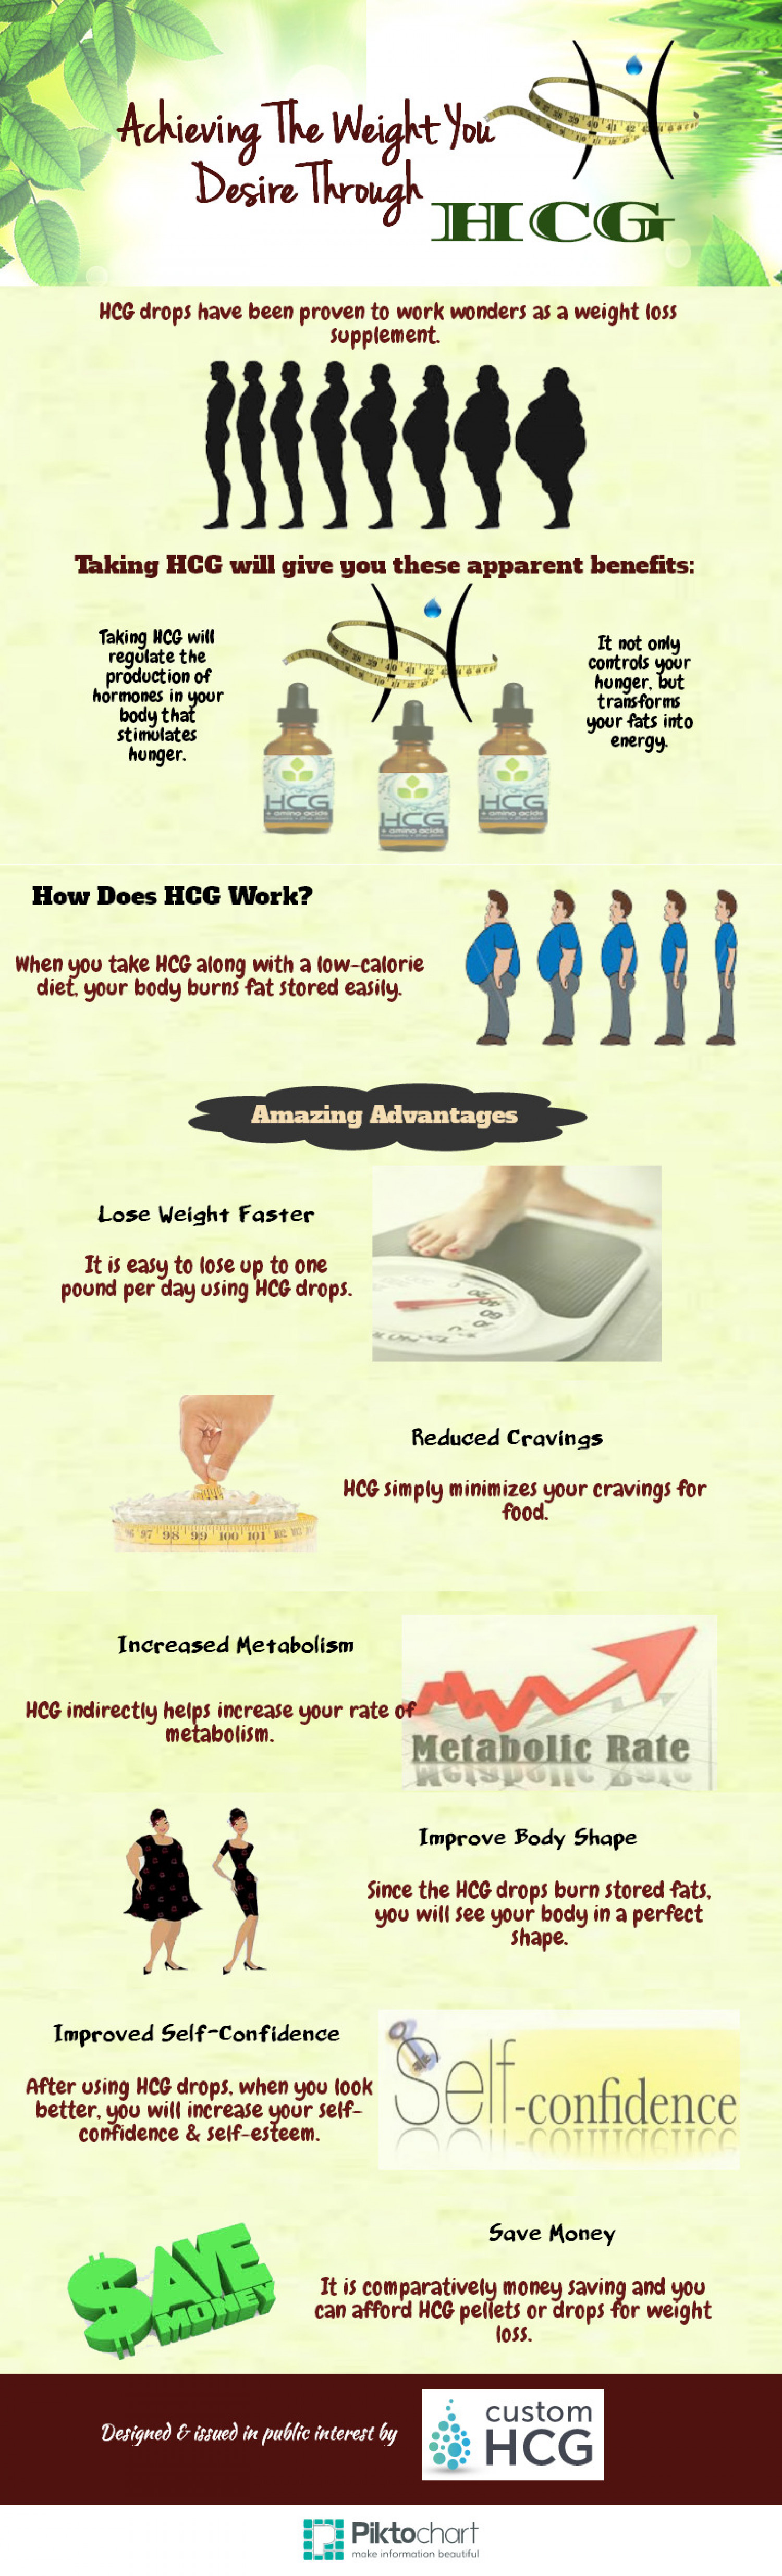 Achieving the Weight You Desire Through HCG Infographic